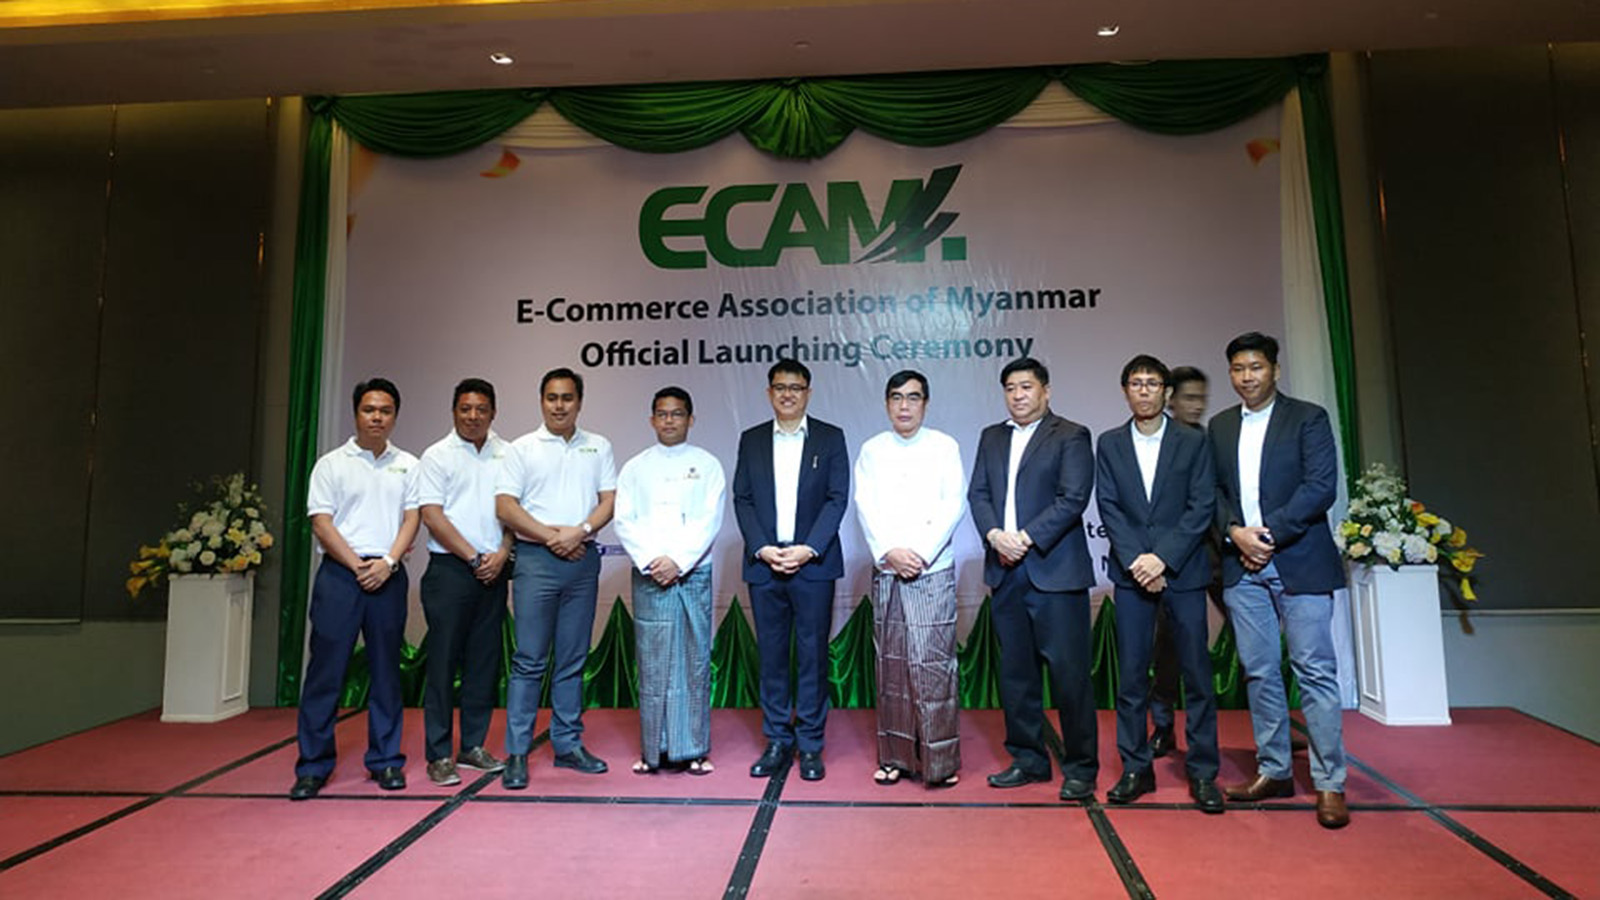 Attendees pose for a group photo at the official launching ceremony of E-Commerce Association of Myanmar (ECAM) at the Novotel Hotel on Pyay Road in Yangon yesterday. Photo: GNLM